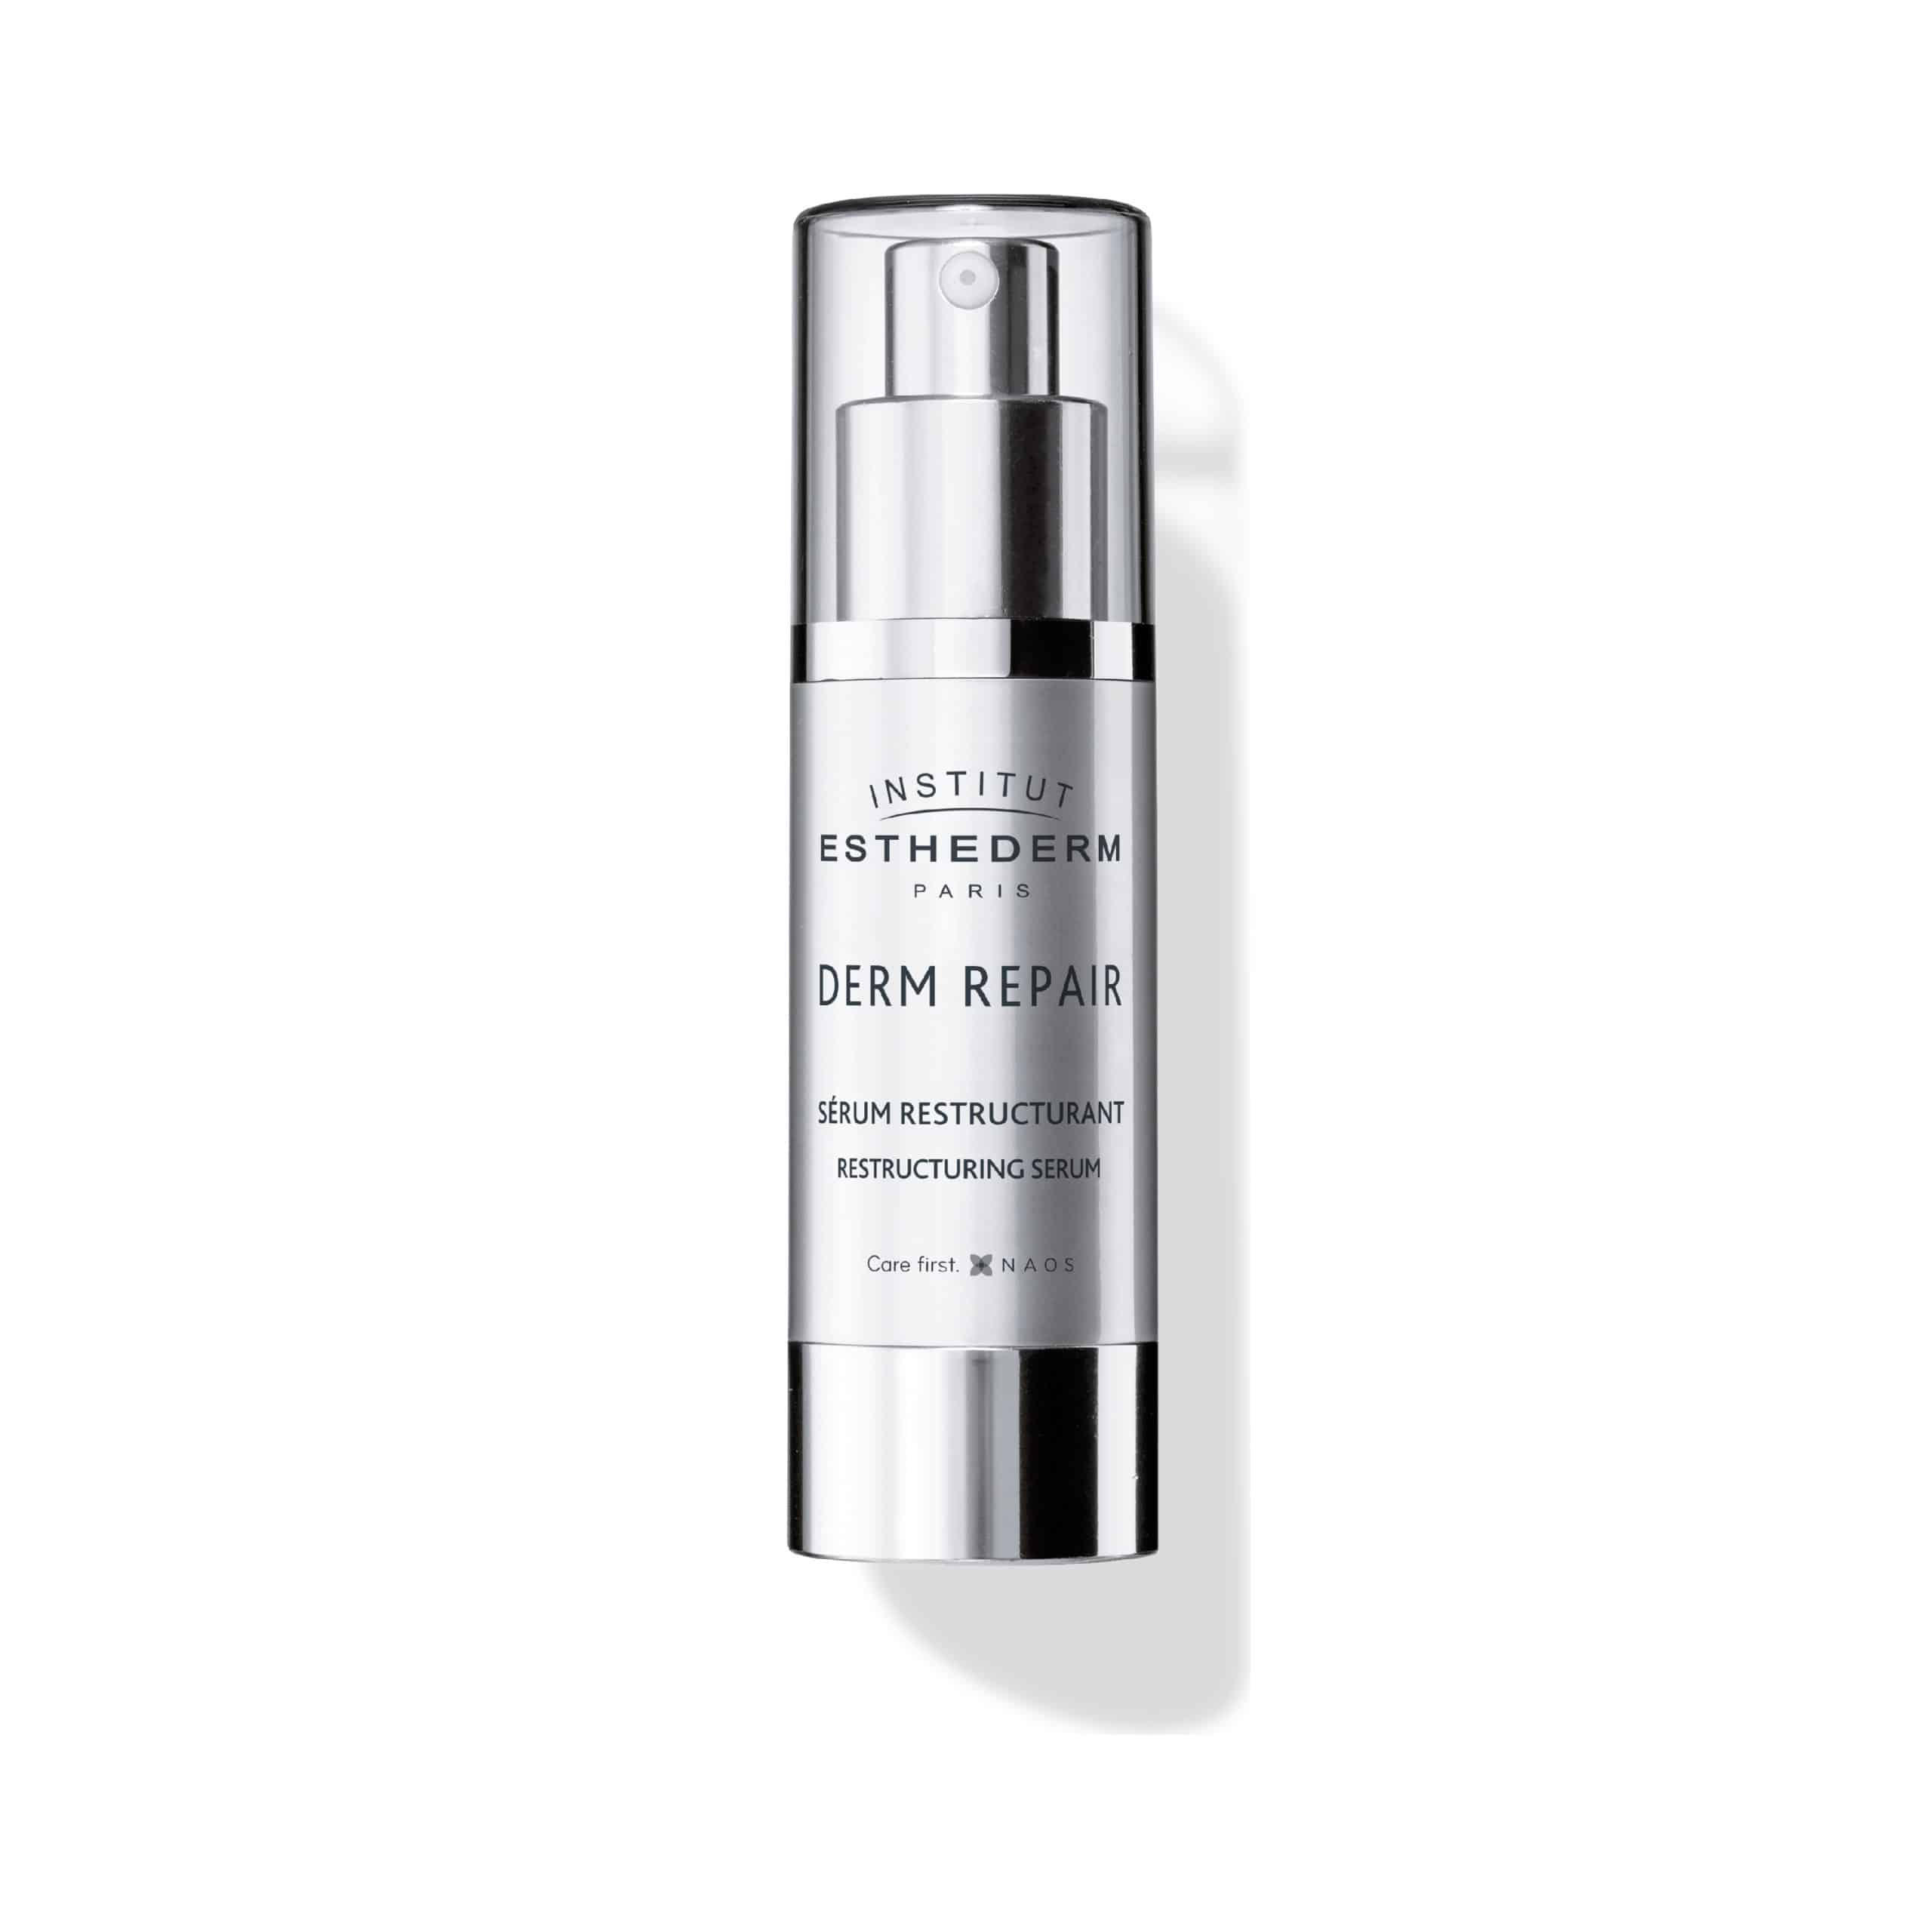 ESTHEDERM photo produit, Active Repair Derm Repair Sérum Restructurant 30ml, Soin concentré fermeté, ridules et rides